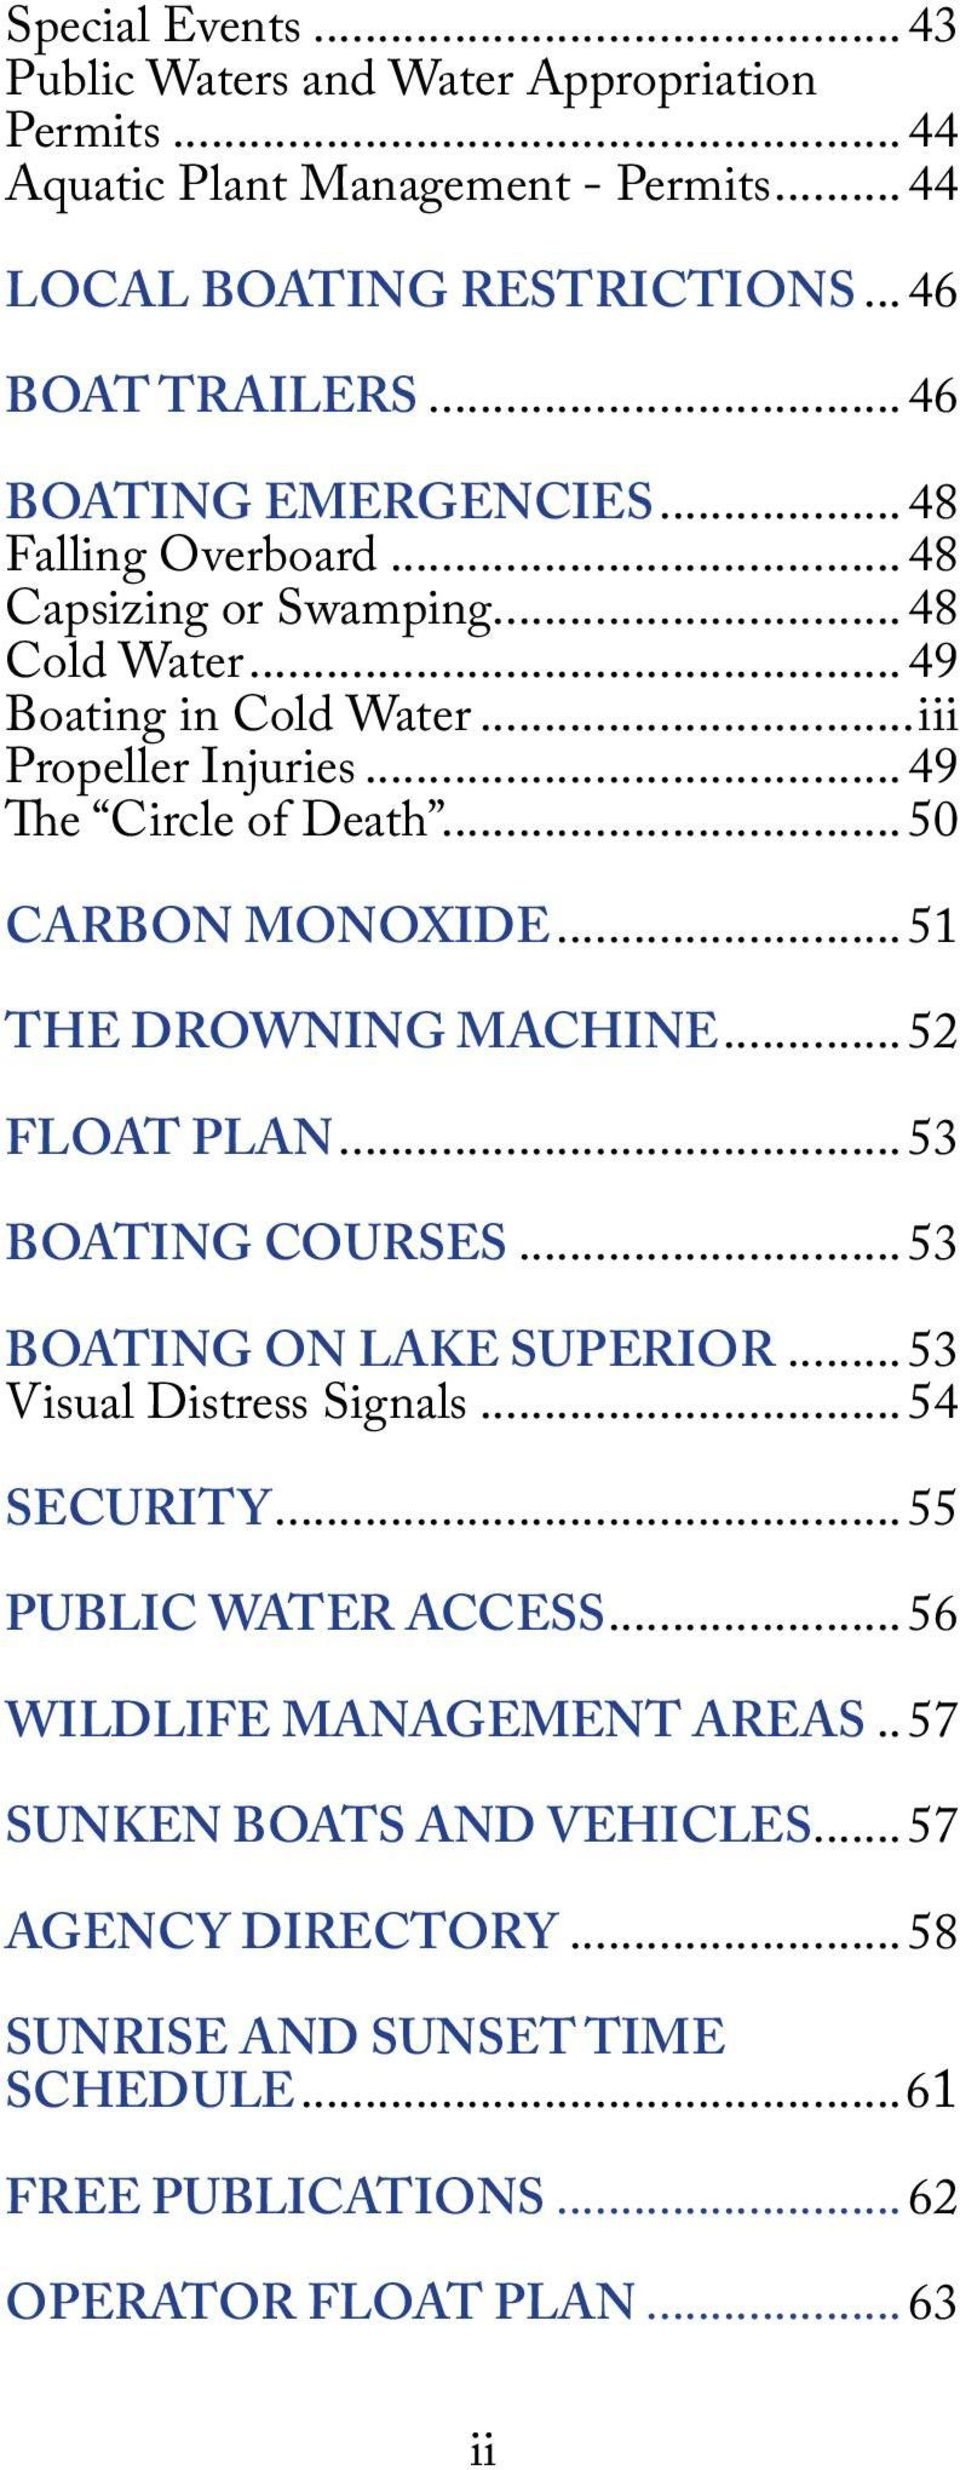 ..50 CARBON MONOXIDE...51 THE DROWNING MACHINE...52 FLOAT PLAN...53 BOATING COURSES...53 BOATING ON LAKE SUPERIOR...53 Visual Distress Signals...54 SECURITY.